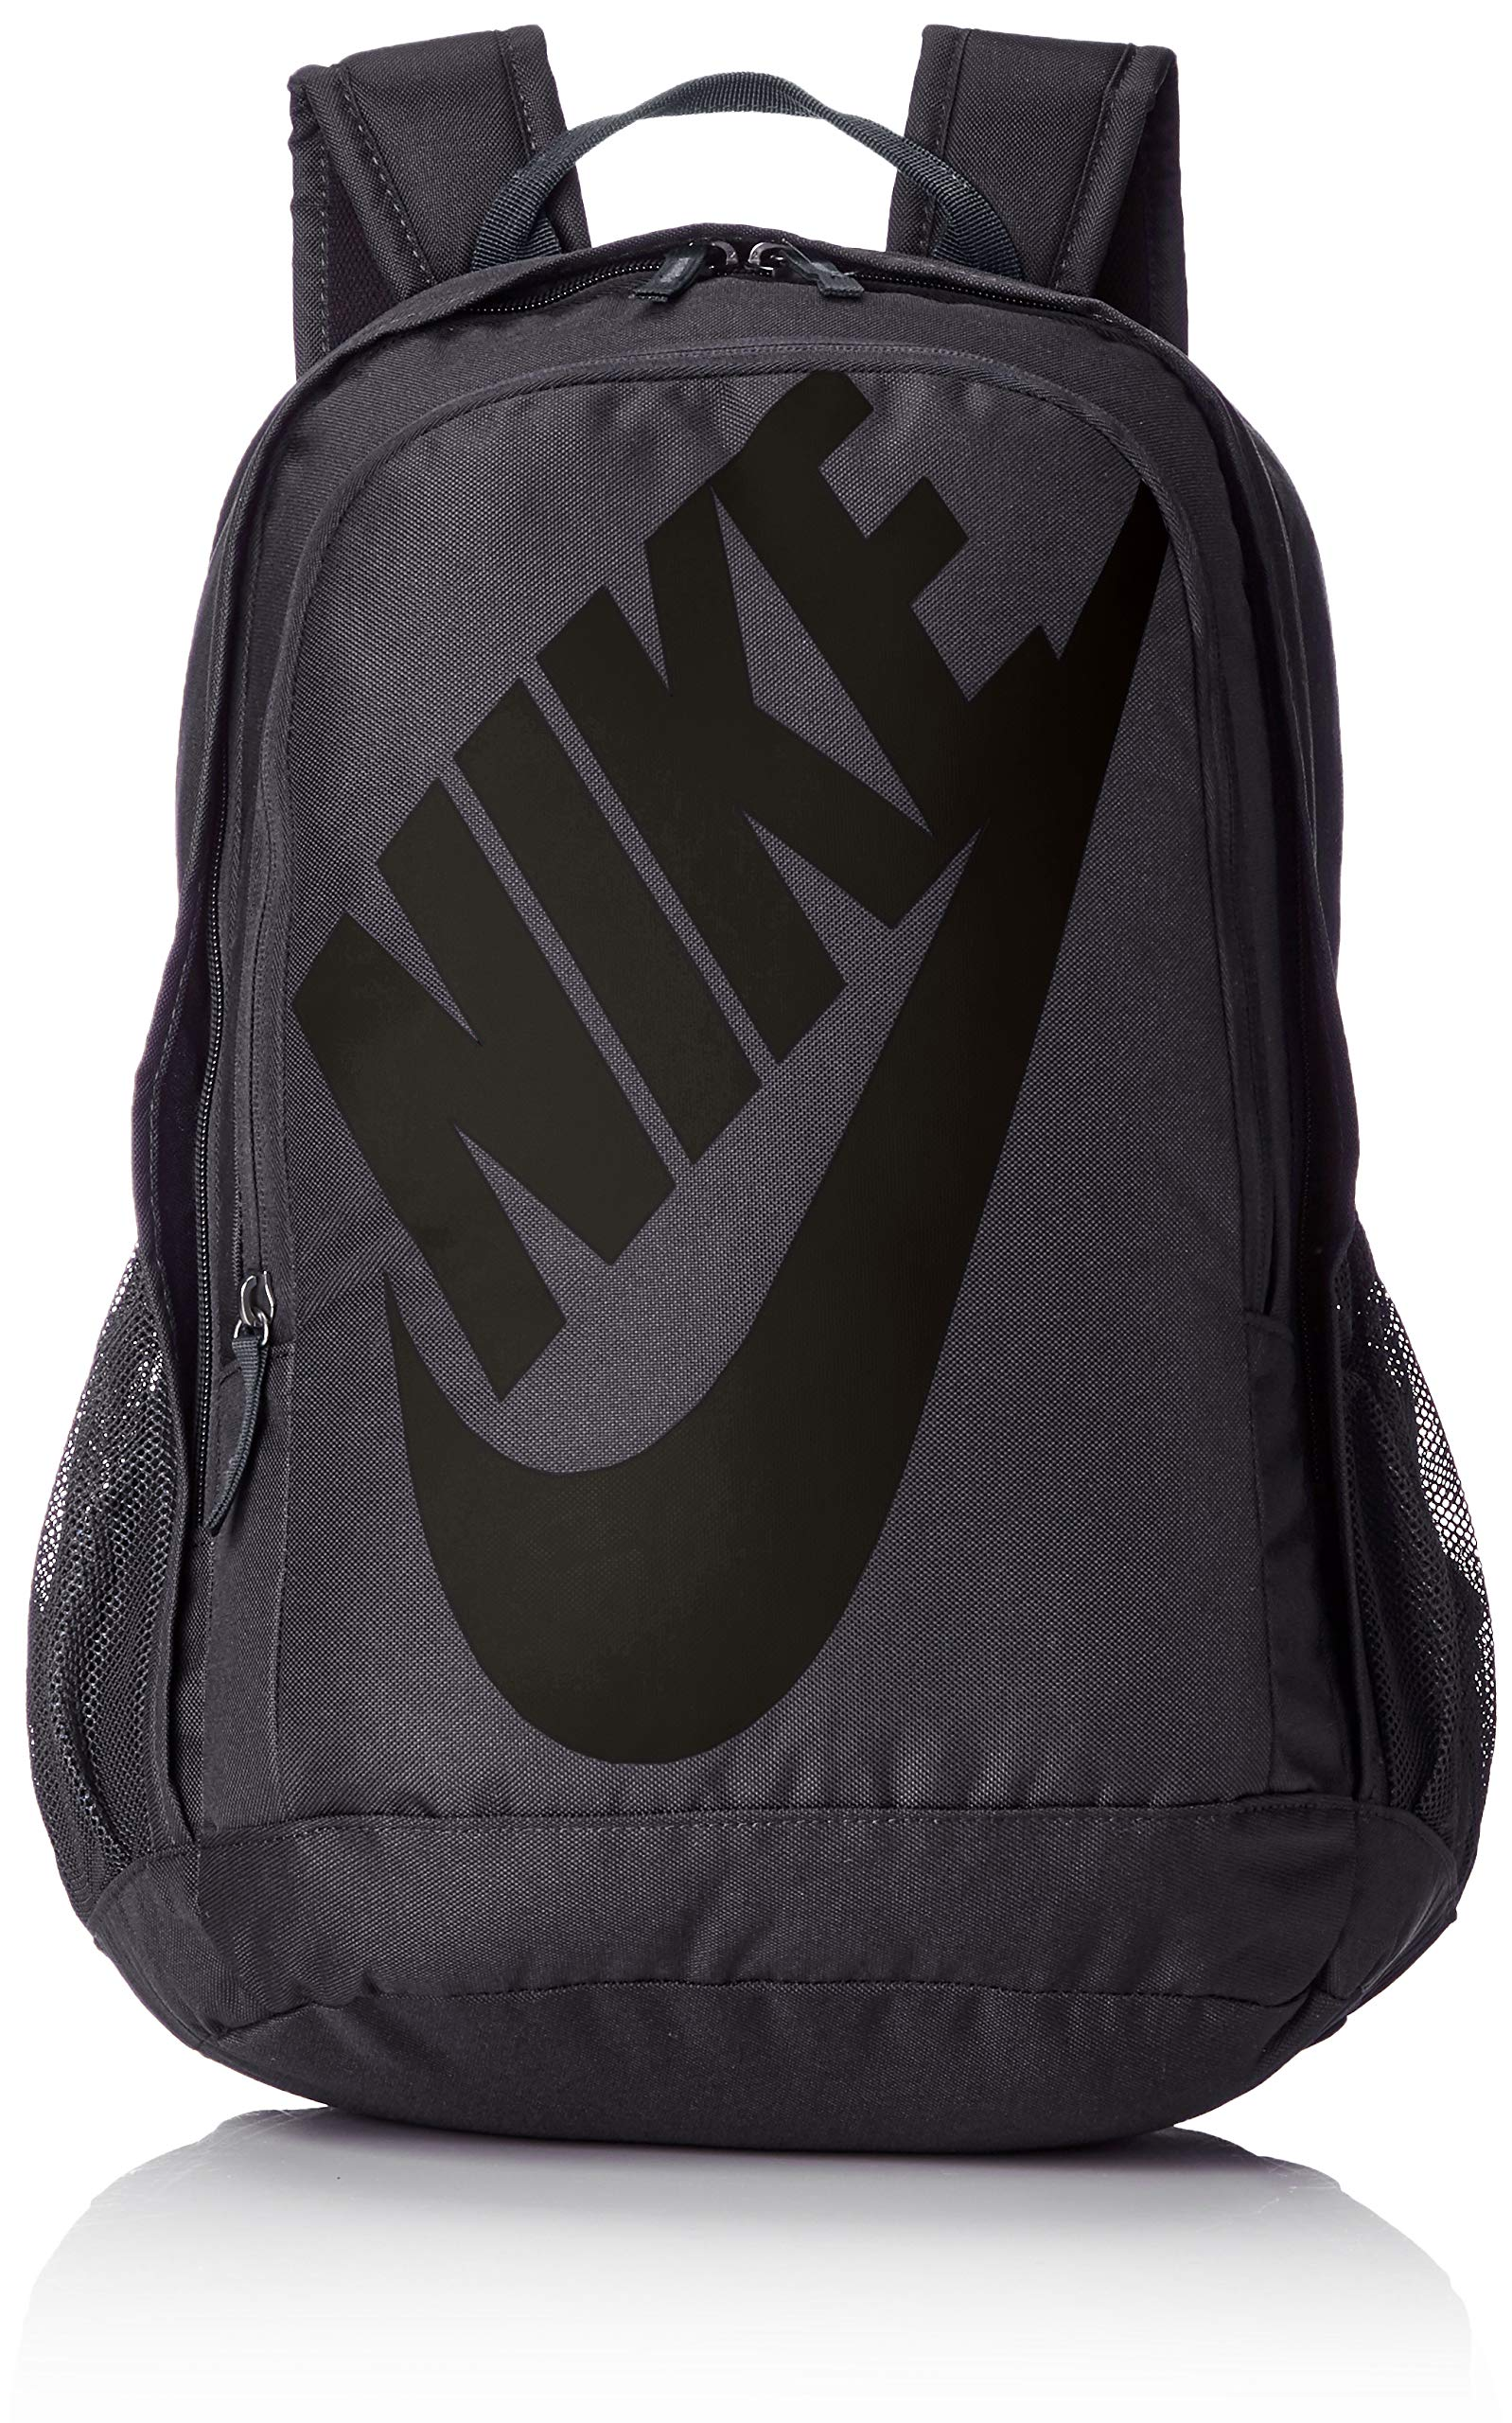 Nike Sportswear Hayward Futura Backpack for Men, Large Backpack with Durable Polyester Shell and Padded Shoulder Straps, Dark Grey/Dark Grey/Black